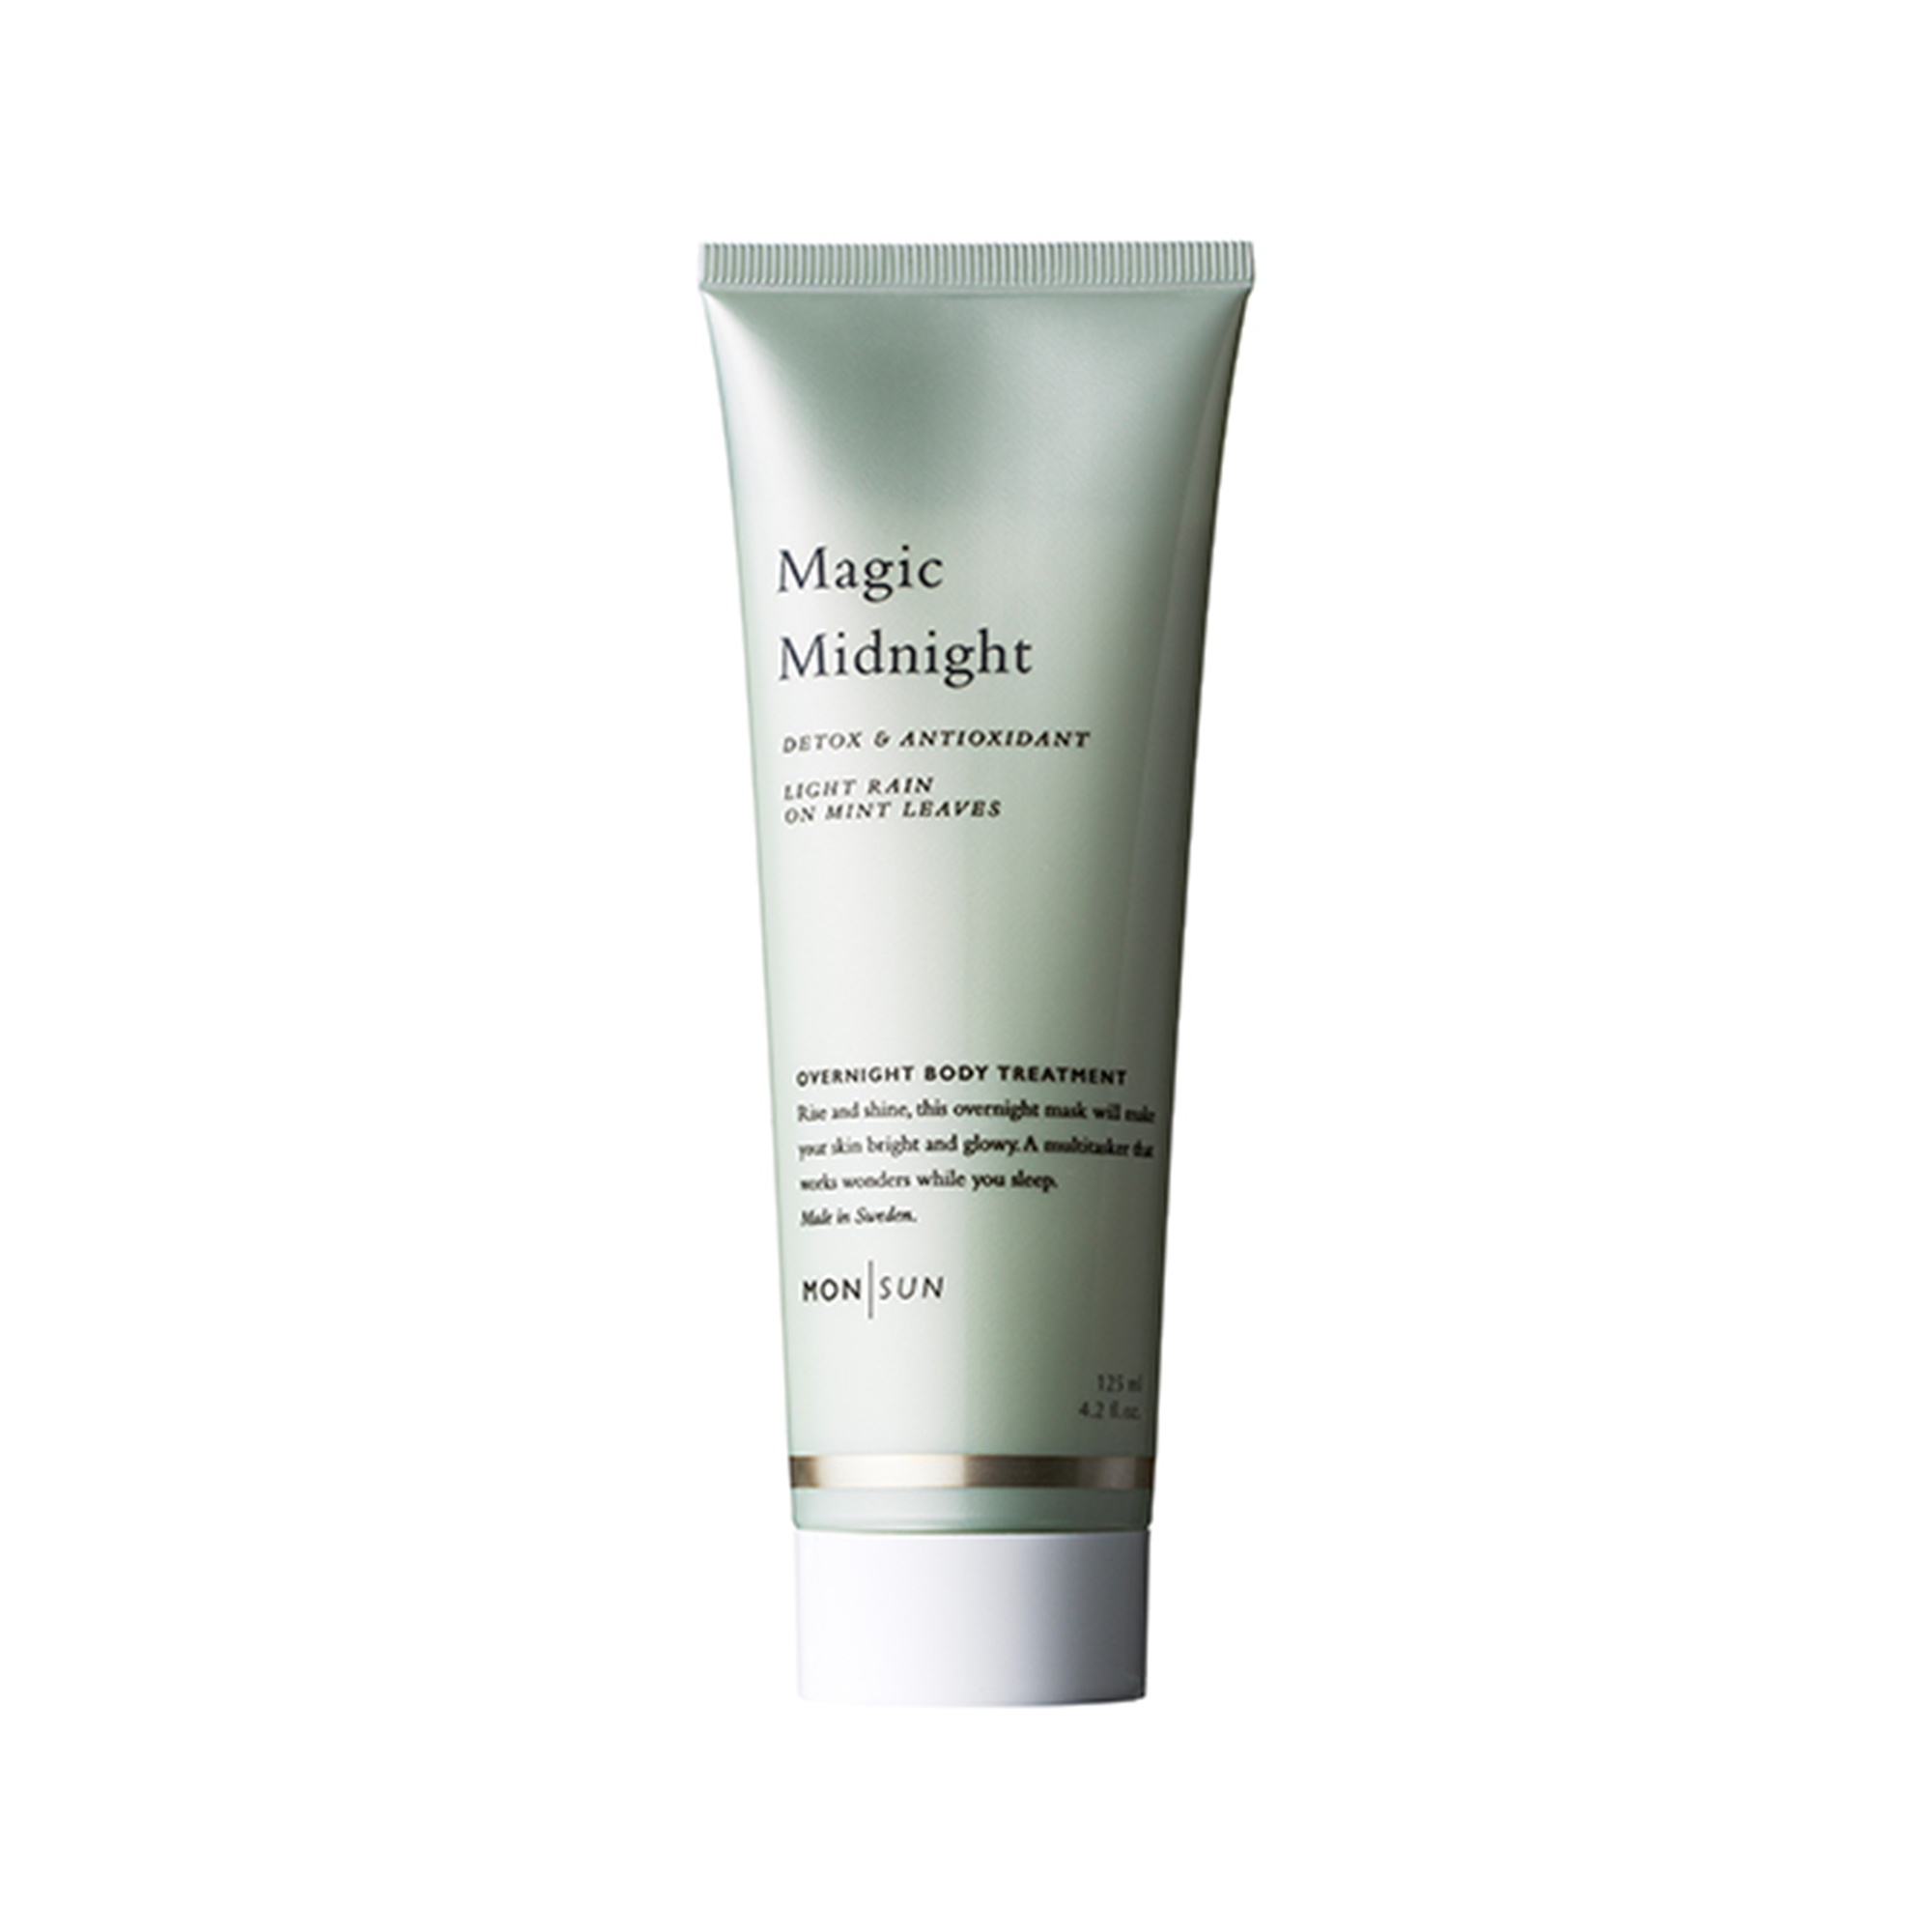 Magic Midnight Detox & Antioxidant Overnight Body Treatment